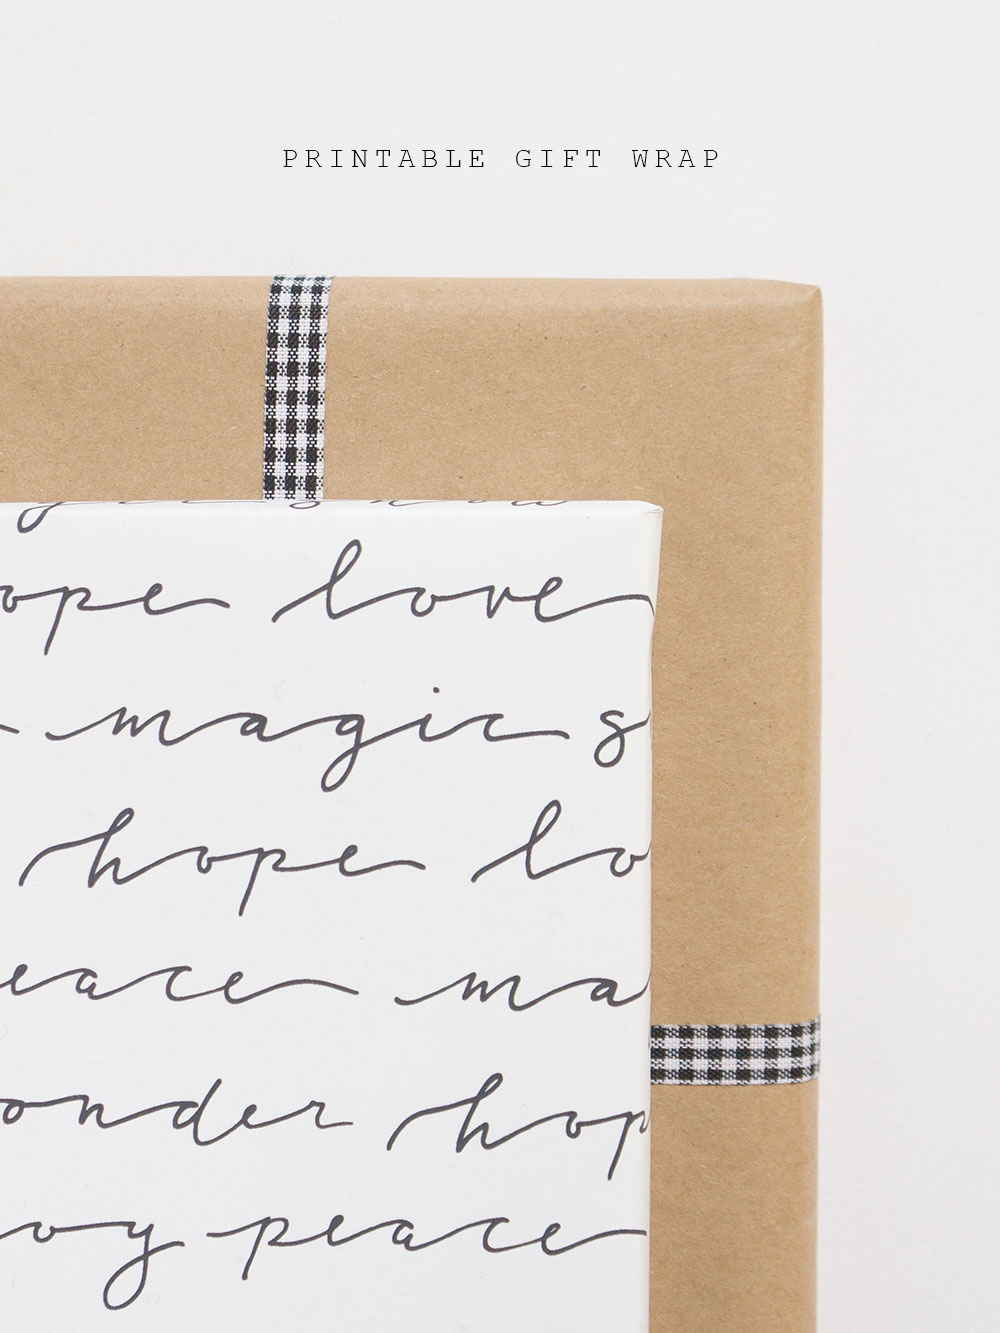 minimal hand-lettered holiday gift wrap | free download